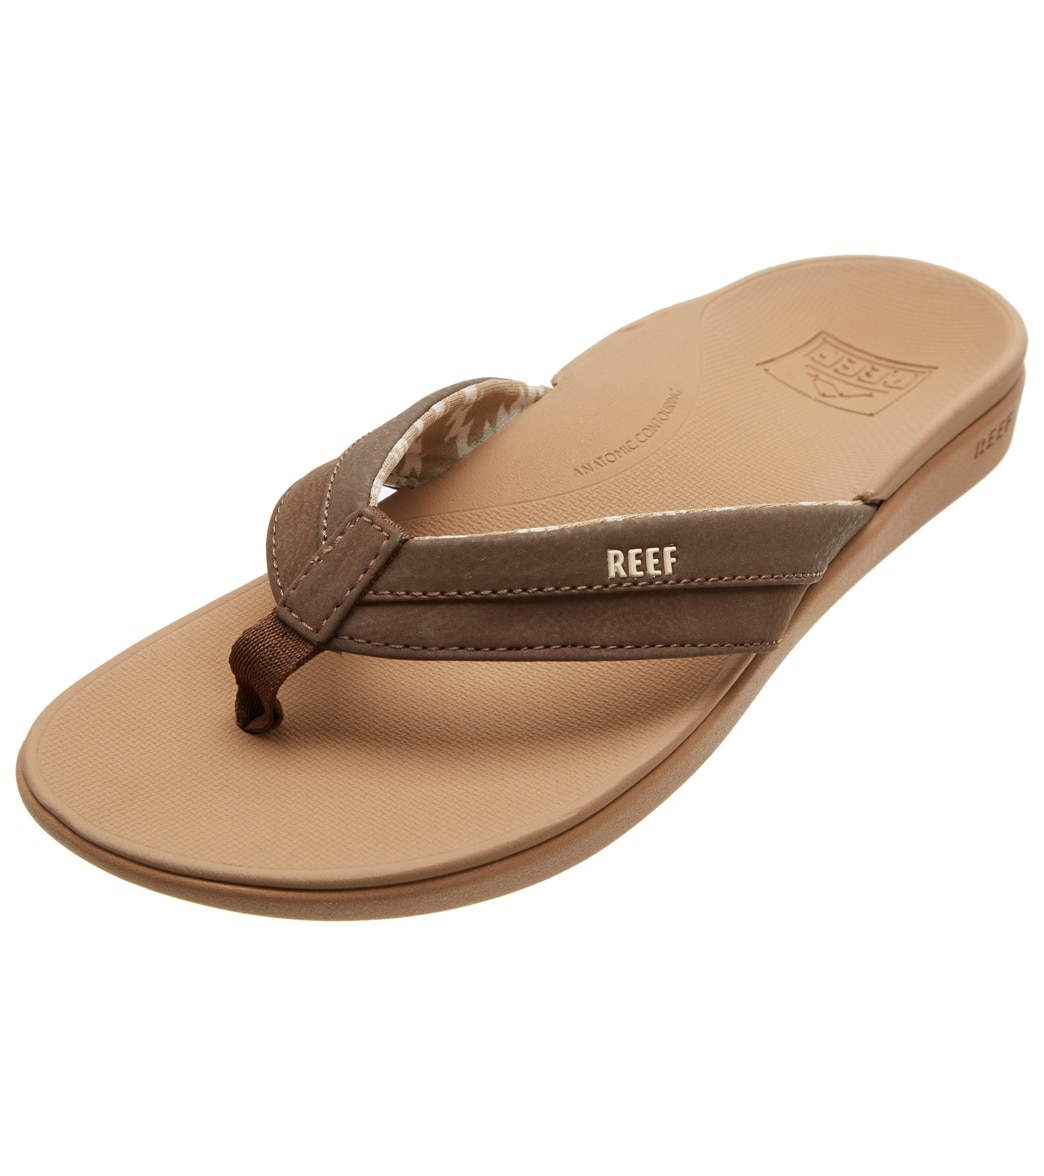 4dd6a084c8e1 Reef Ortho-Bounce Coast Flip Flop at SwimOutlet.com - Free Shipping